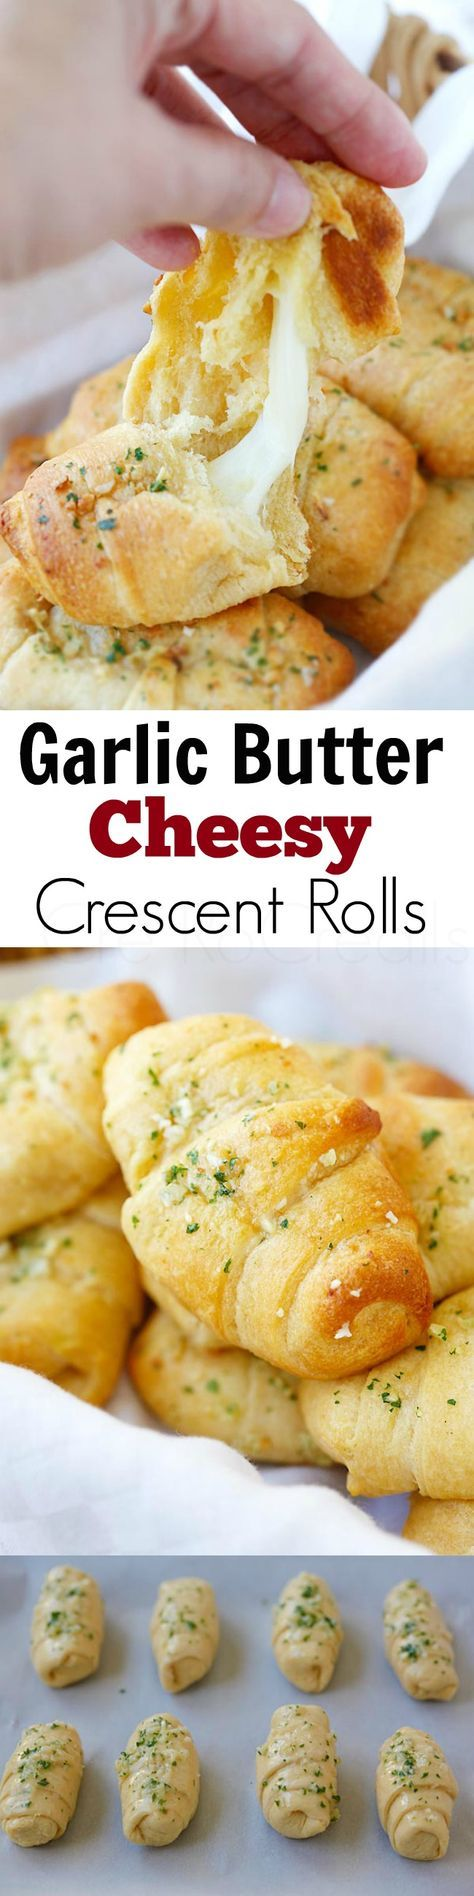 Garlic Butter Cheesy Crescent Rolls - amazing crescent rolls loaded with Mozzarella cheese and topped with garlic butter, takes 20 mins!!! | http://rasamalaysia.com